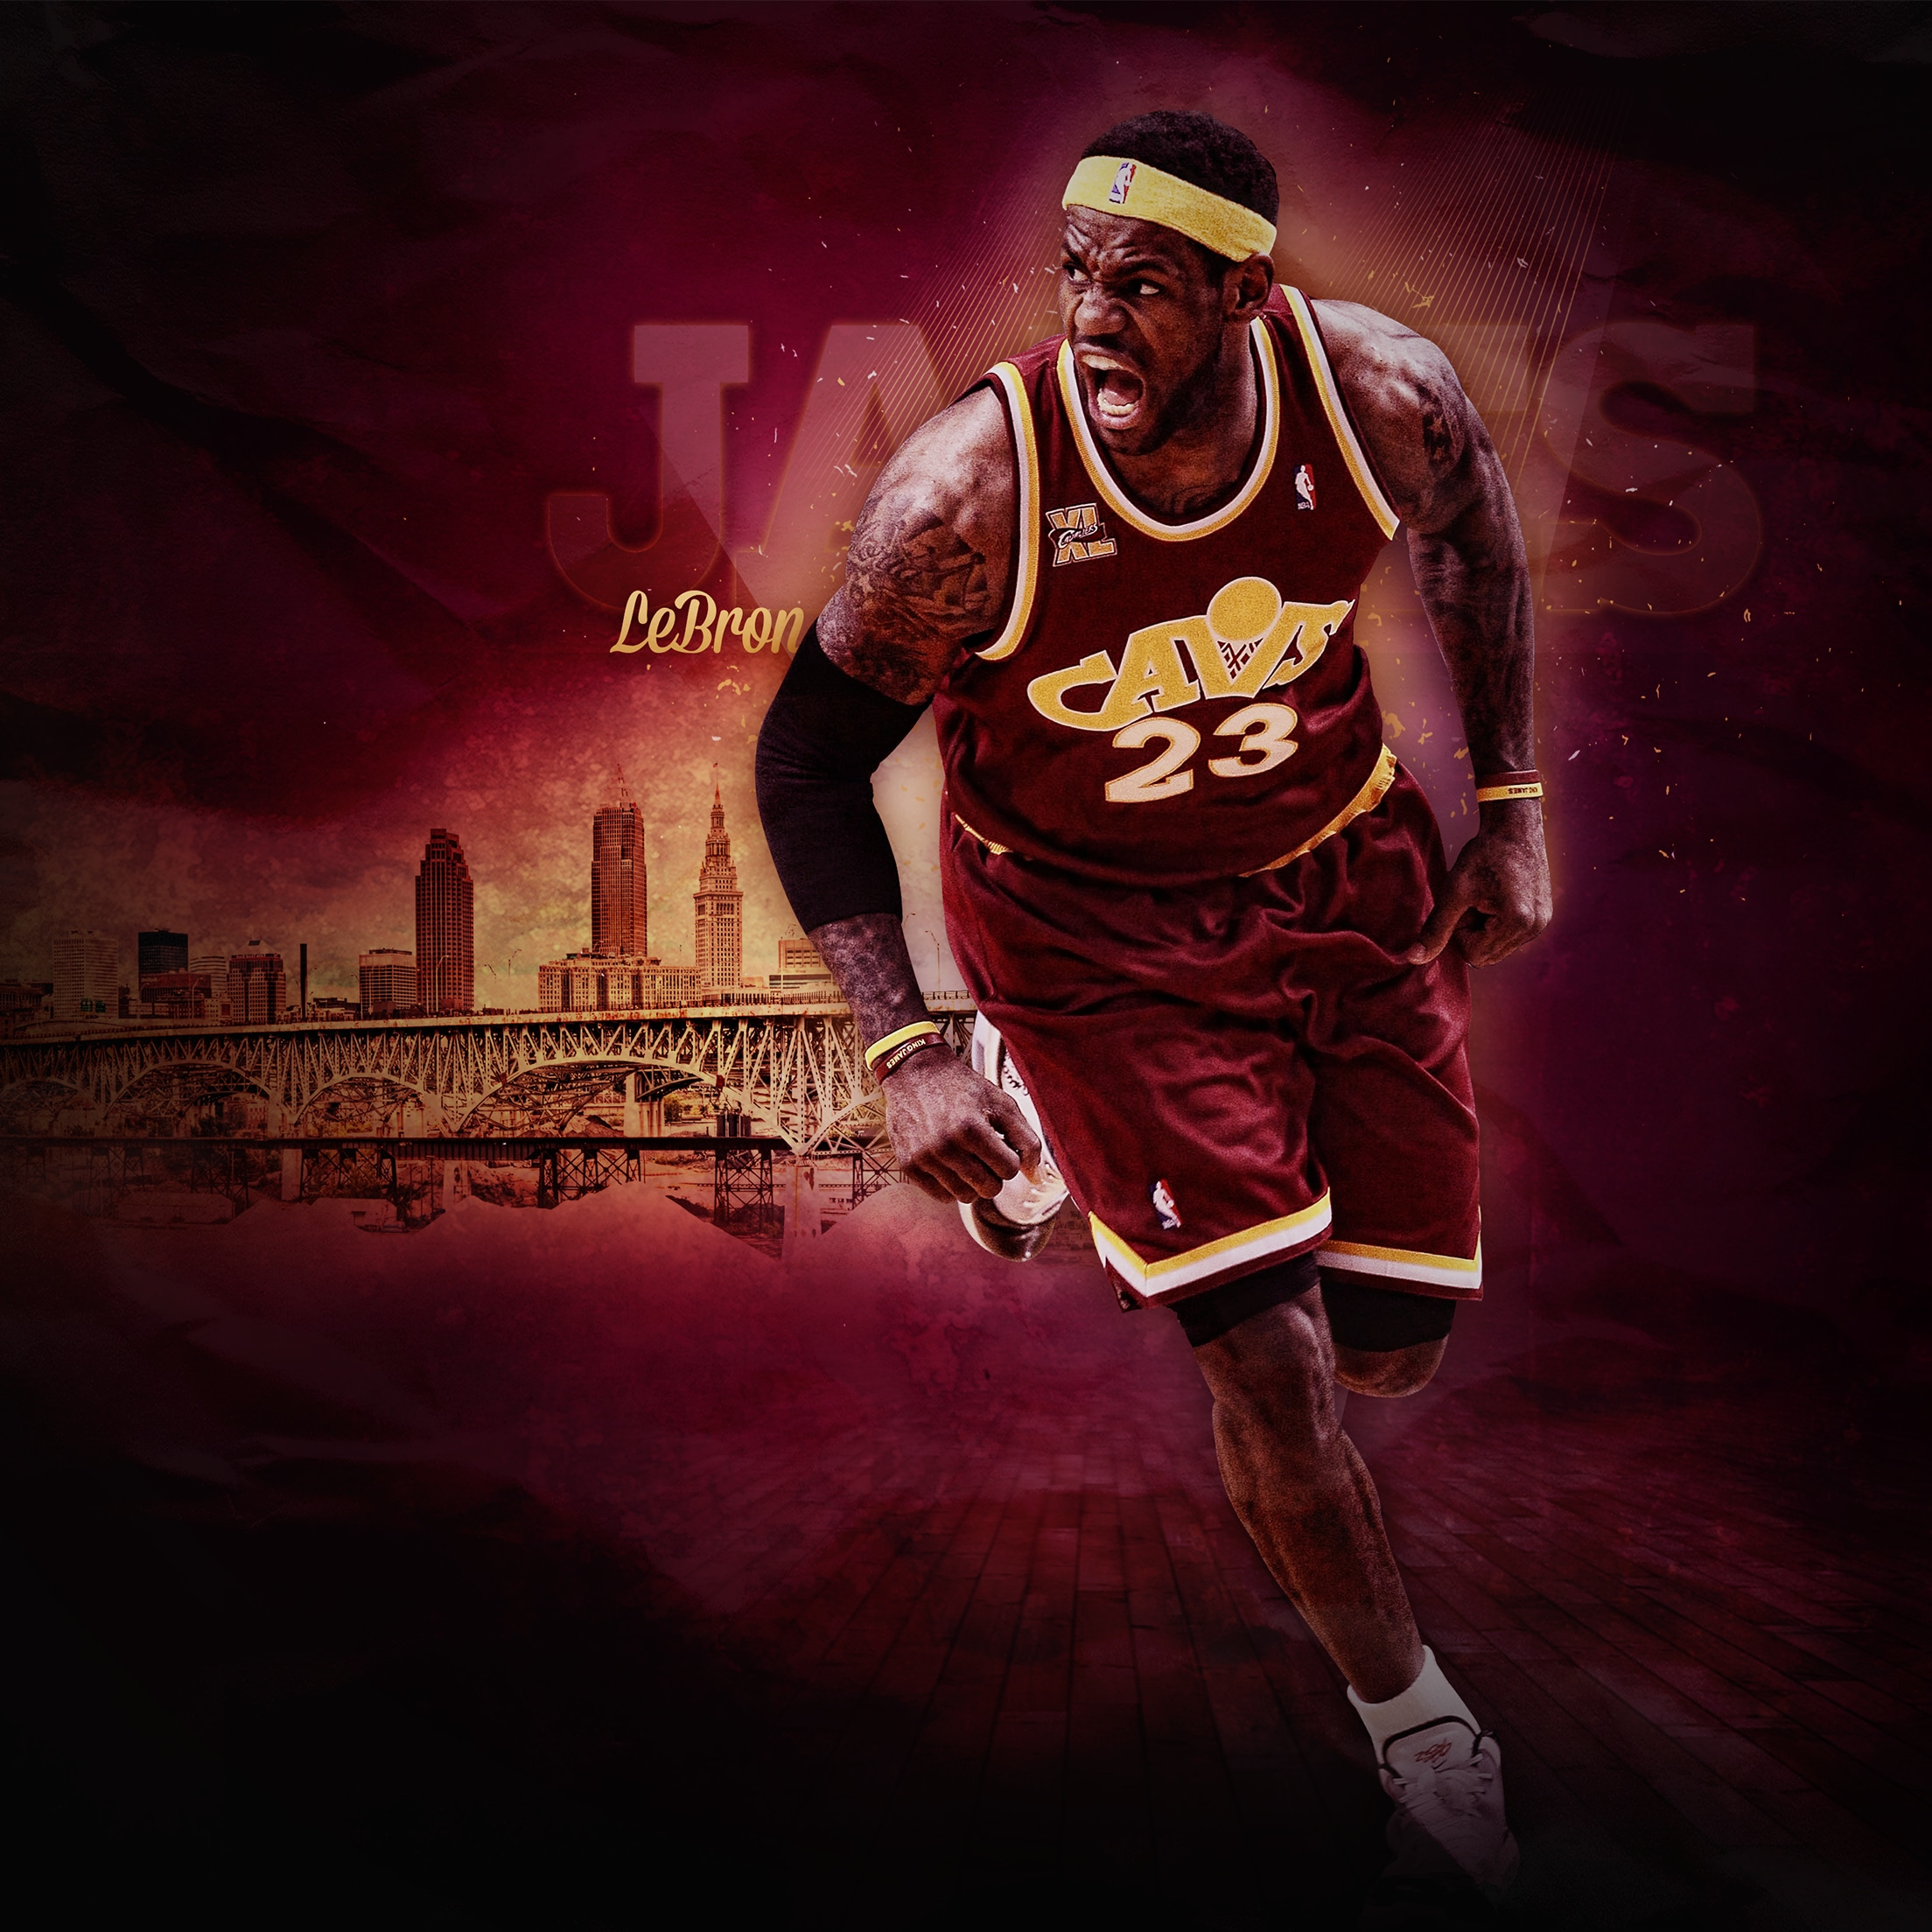 Lebron James Wallpaper Iphone: Cleveland Cavaliers